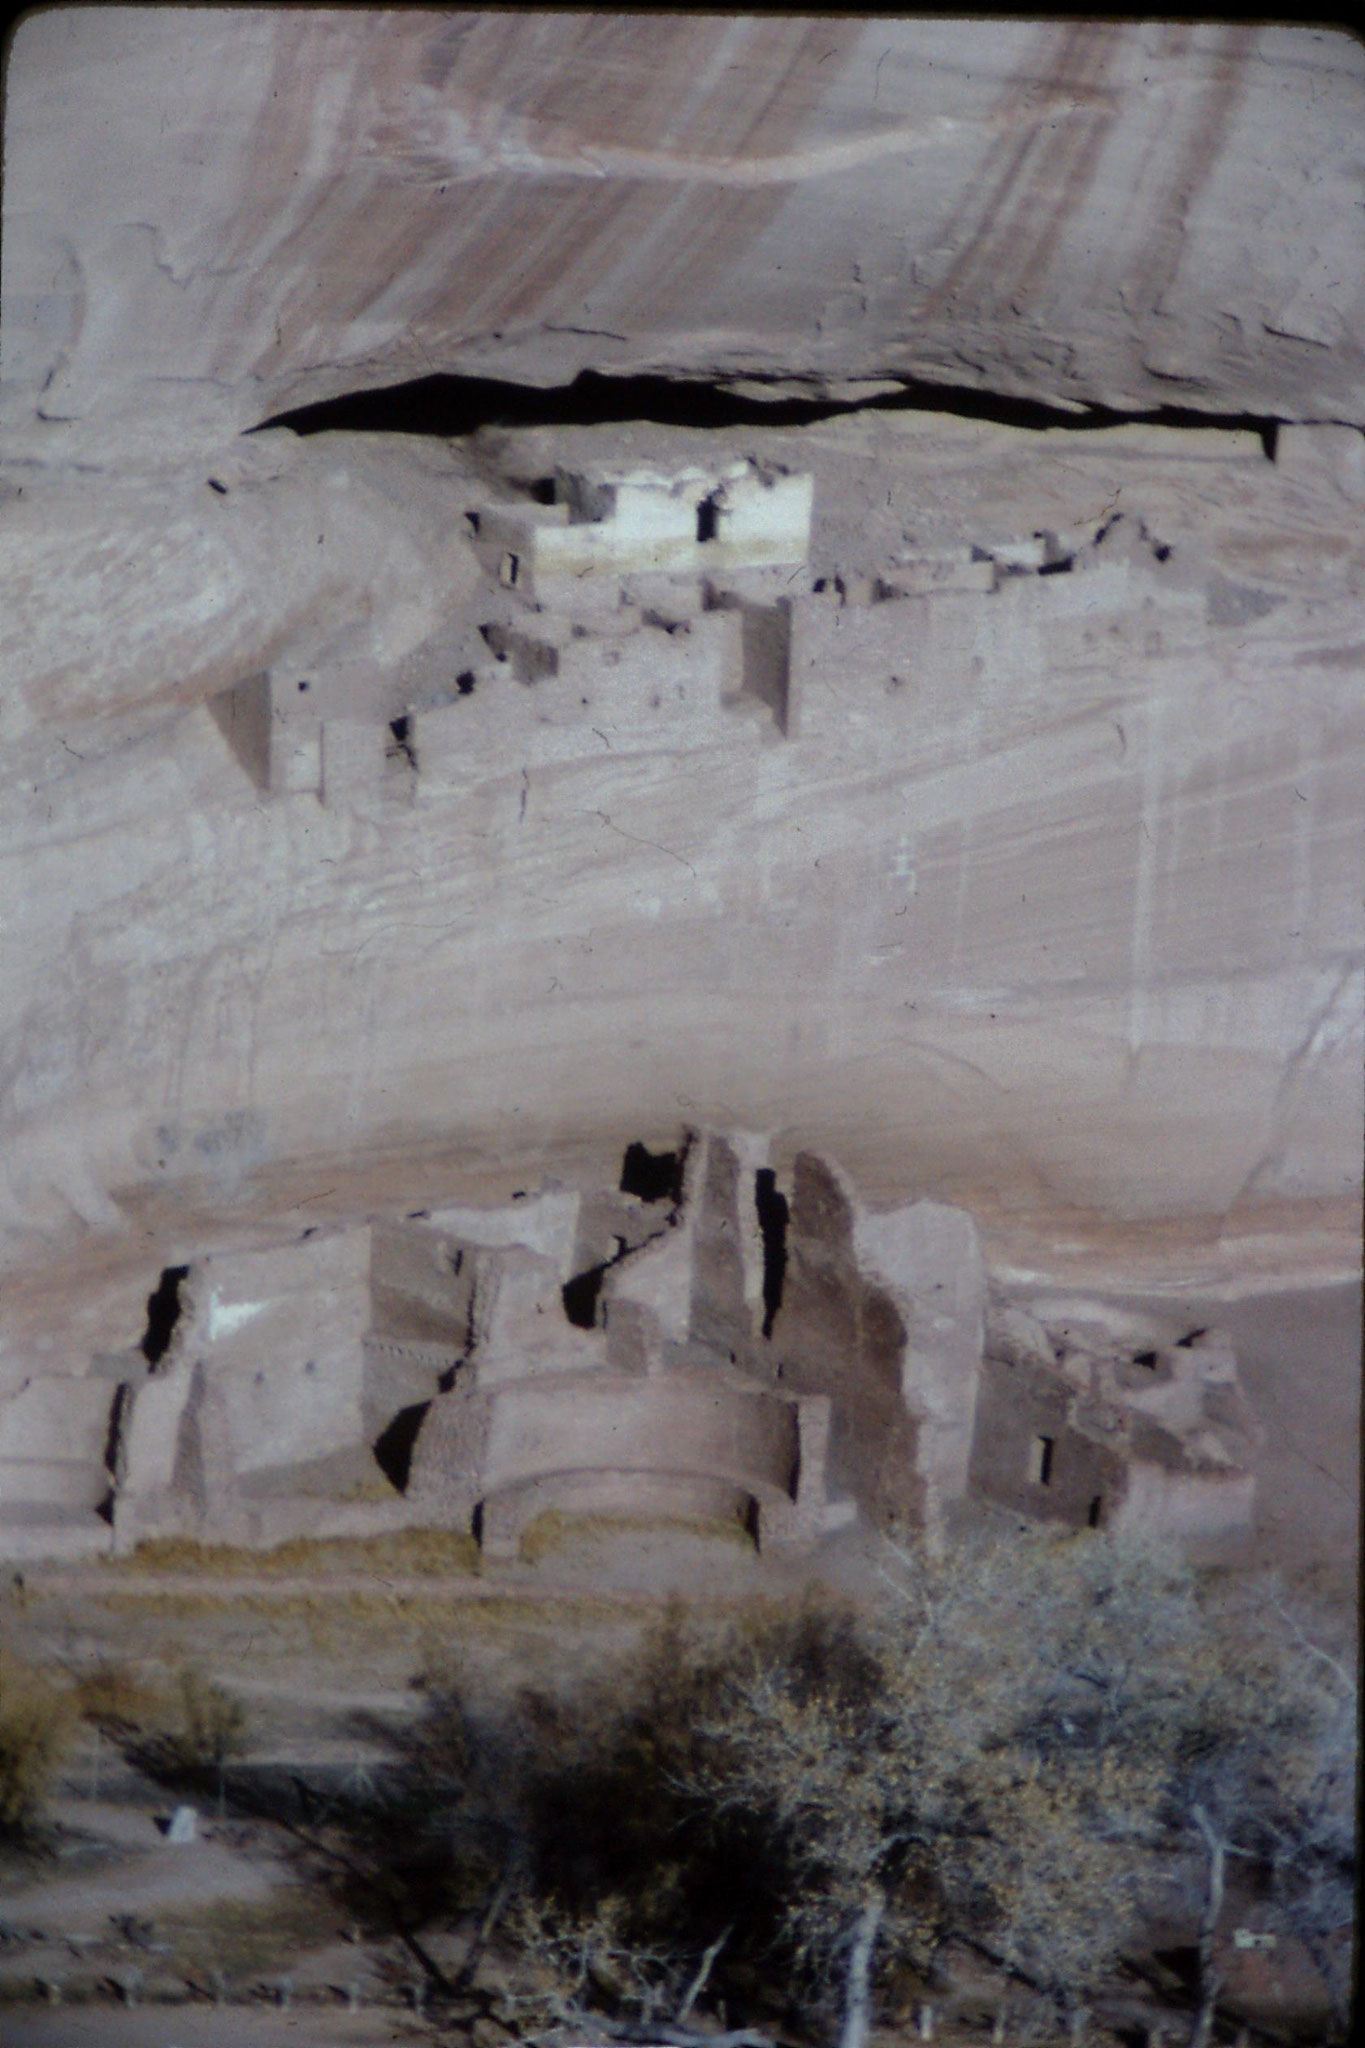 14/12/1990: 24: Canyon de Chelly